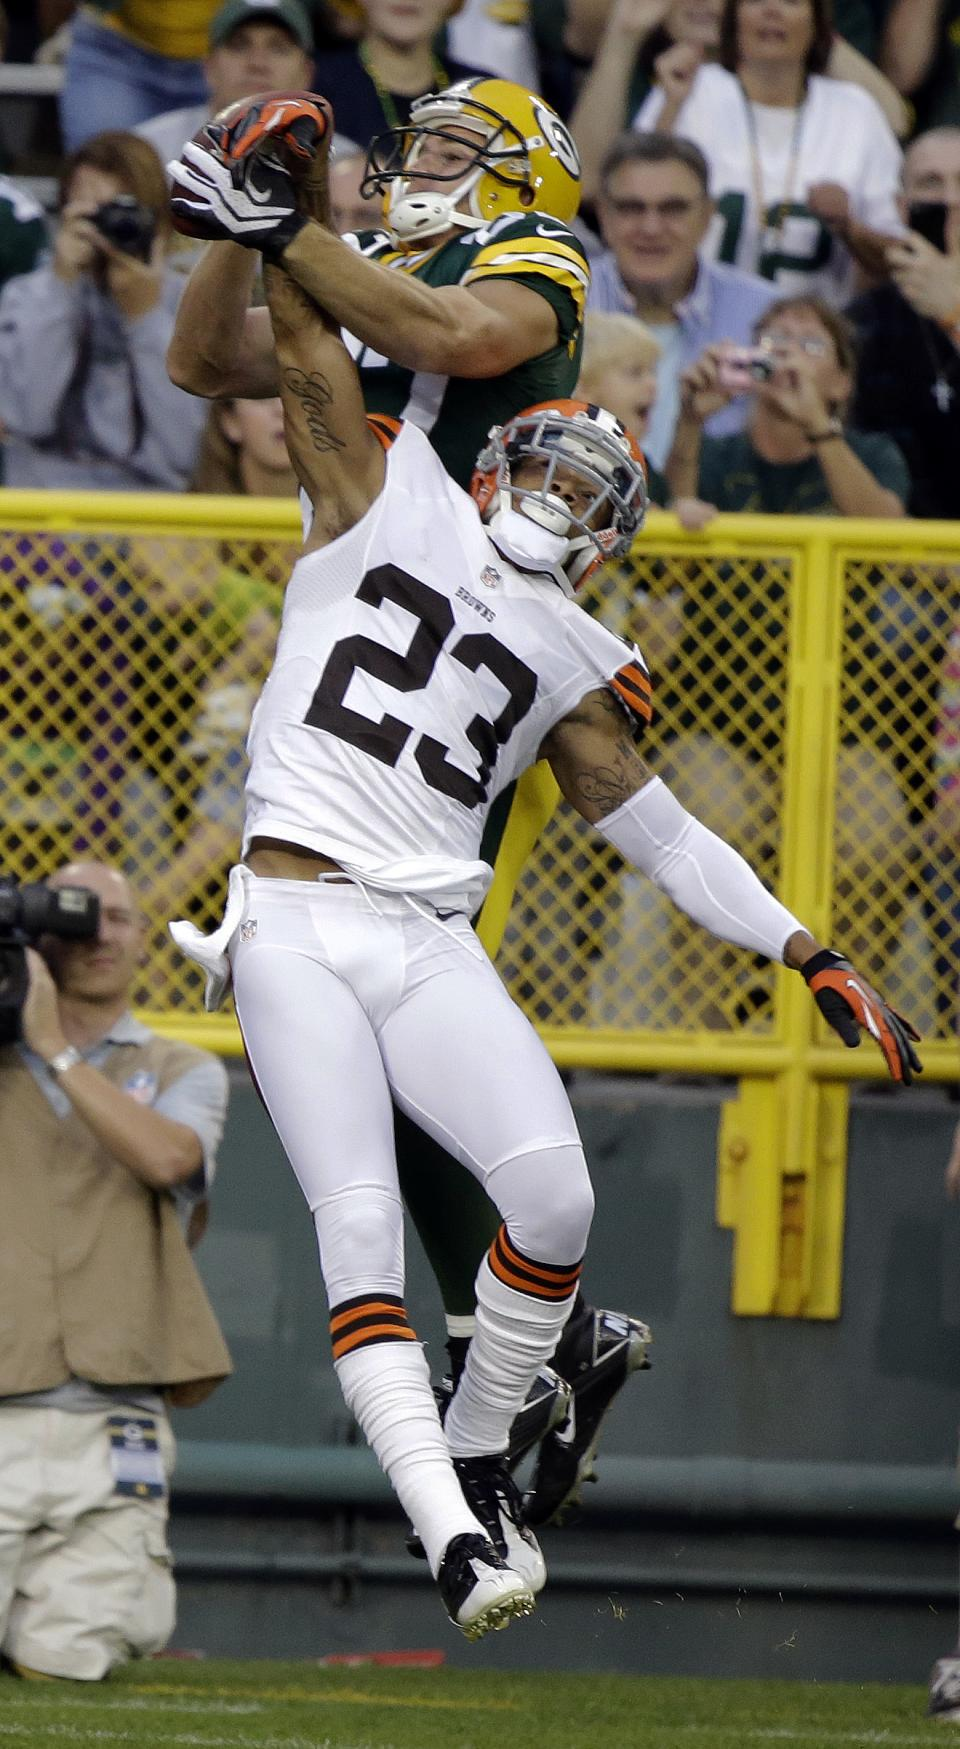 Green Bay Packers wide receiver Jordy Nelson catches a touchdown pass over Cleveland Browns defensive back Joe Haden (23) during the first half of a preseason NFL football game Thursday, Aug. 16, 2012, in Green Bay, Wis. (AP Photo/Morry Gash)